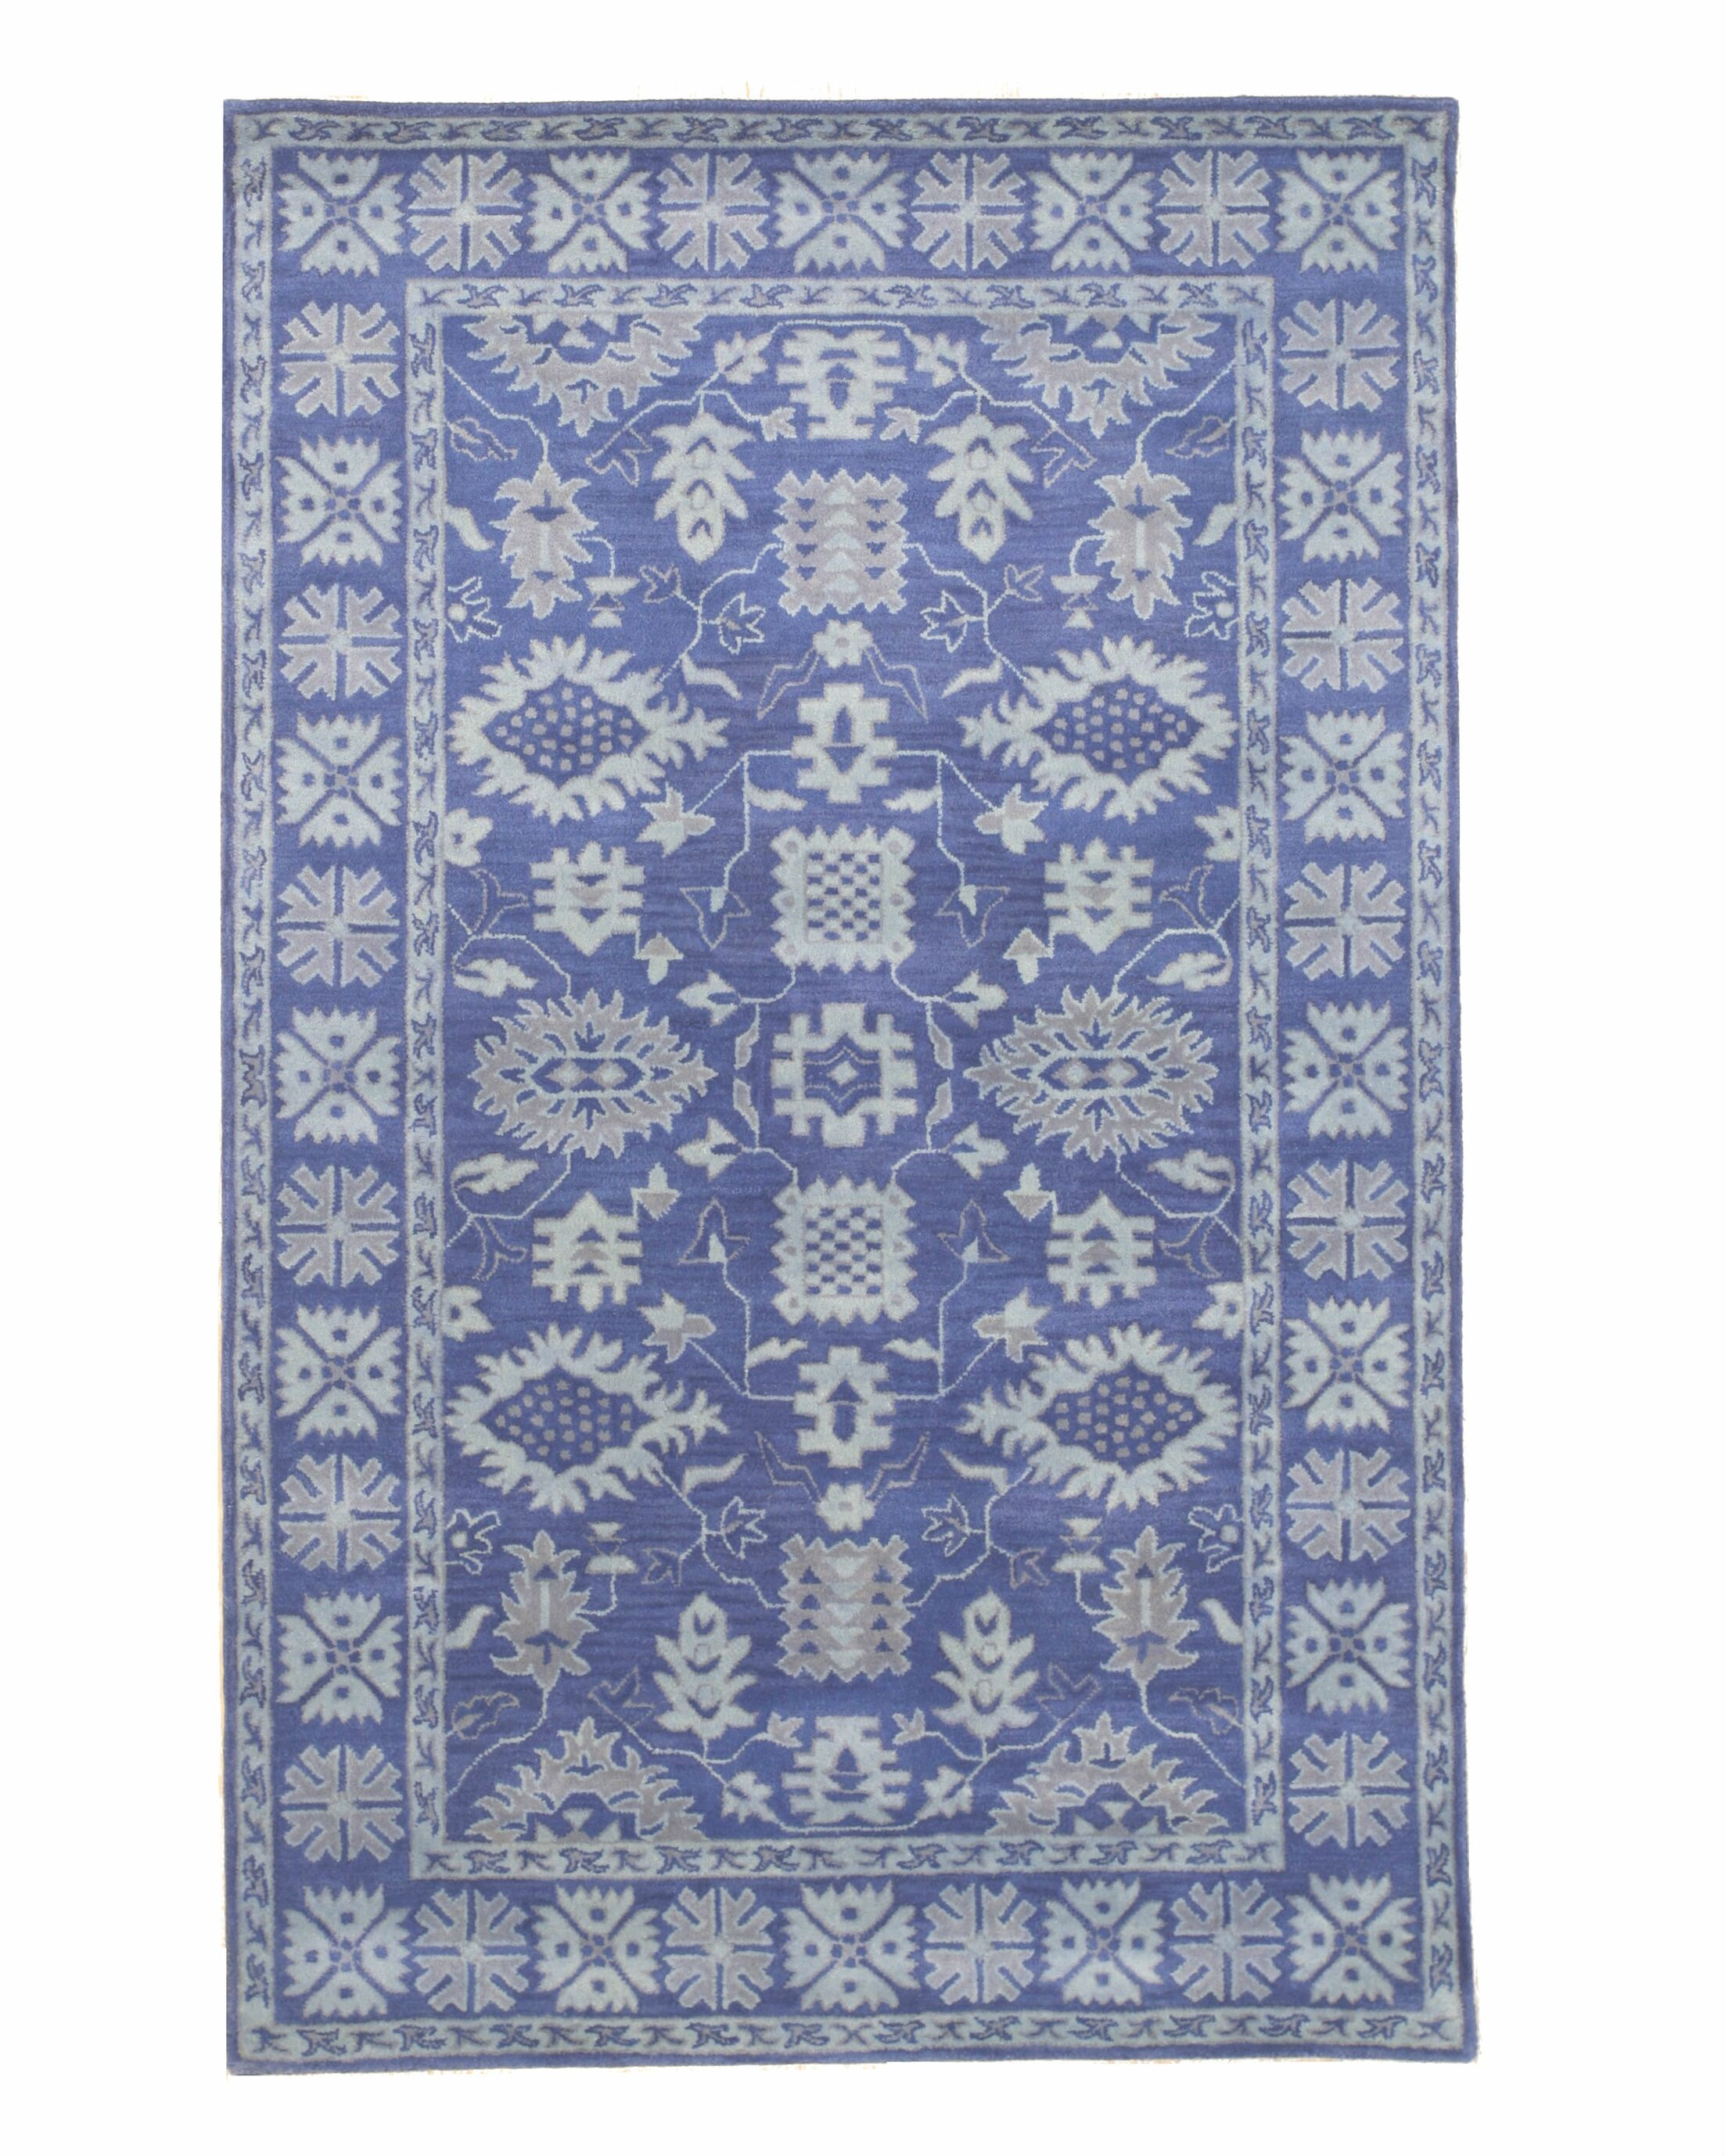 Montville Traditional Oriental Overdyed Hand-Tufted Wool Blue Area Rug Rug Size: Rectangle 8'9